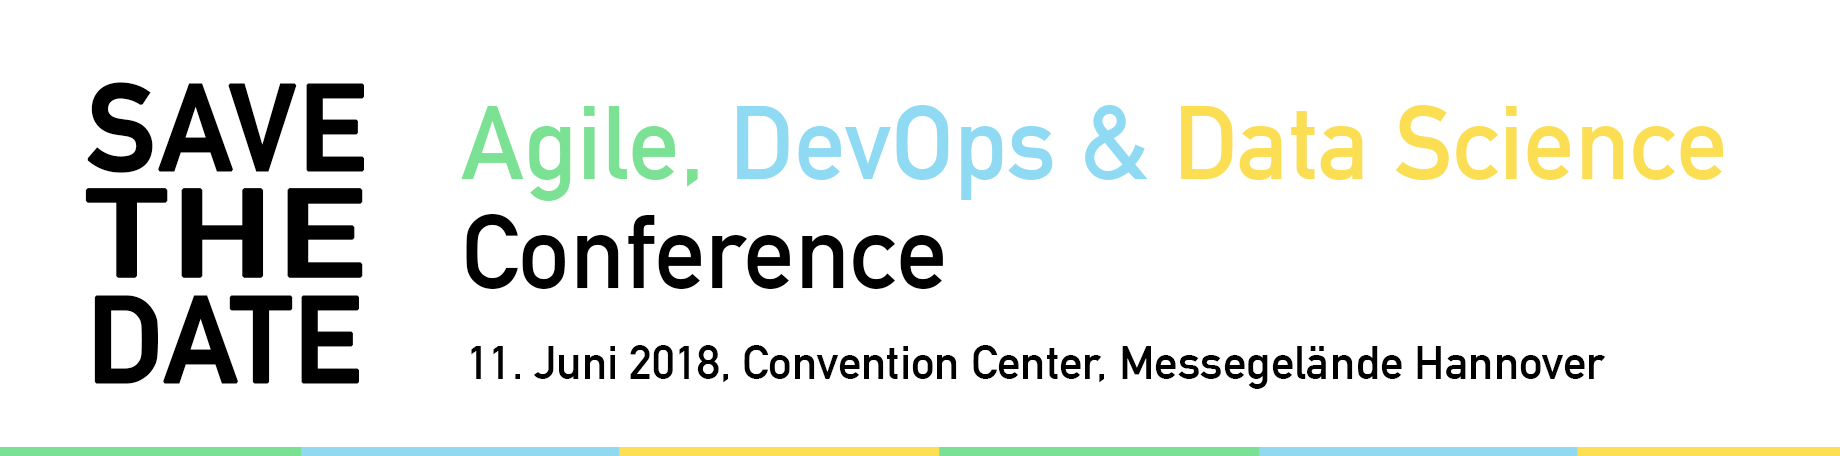 Save the Date: Agile, DevOps & Data Science Conference